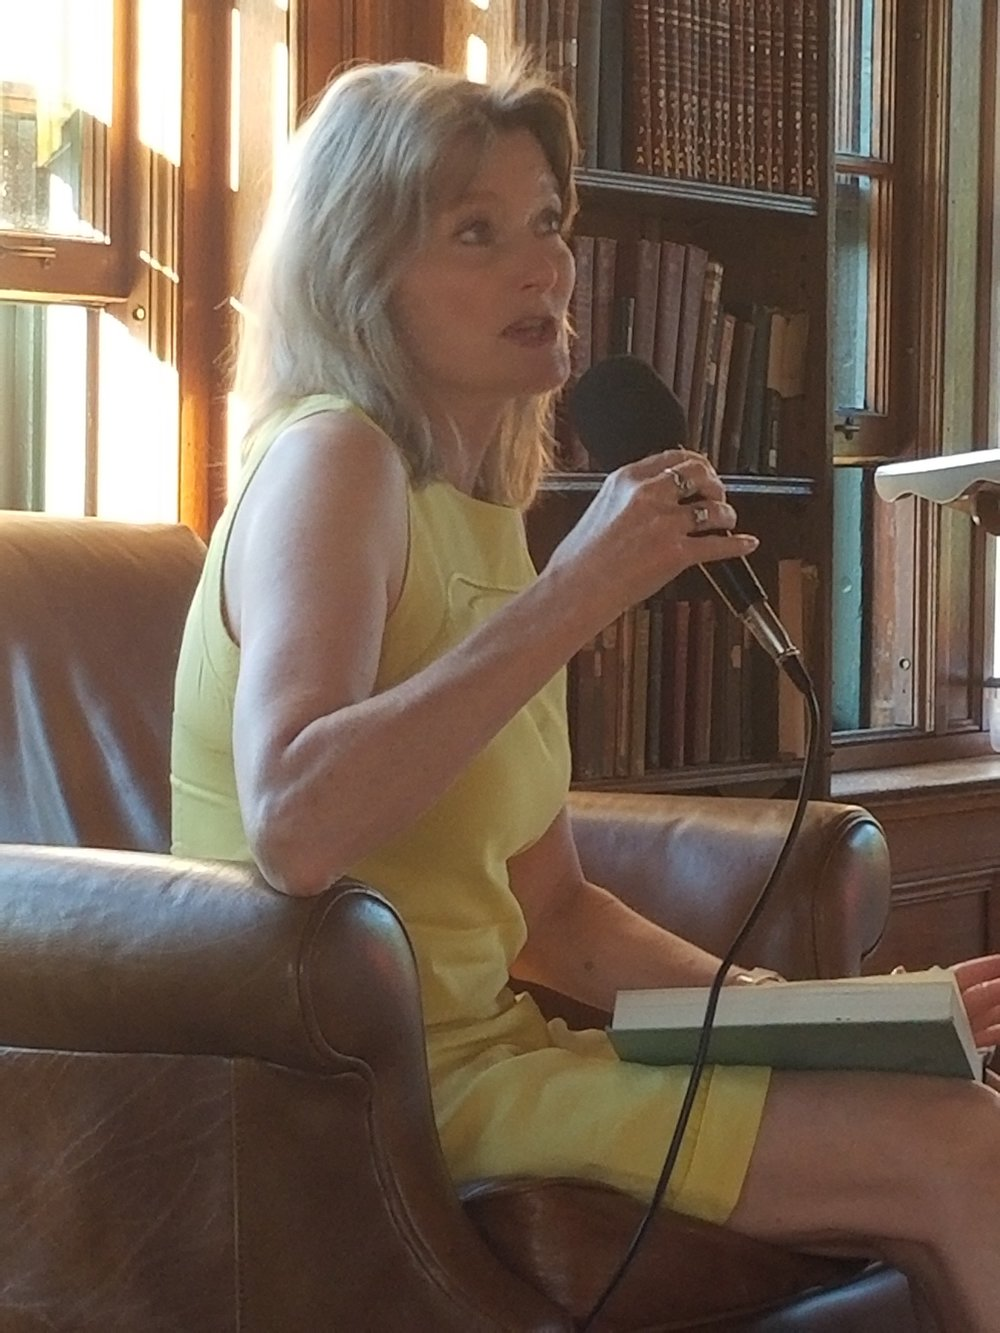 Jennifer Egan, author of  Manhattan Beach , sponsored by  Bank Square Books  at  Wheeler Library  in North Stonington, CT.